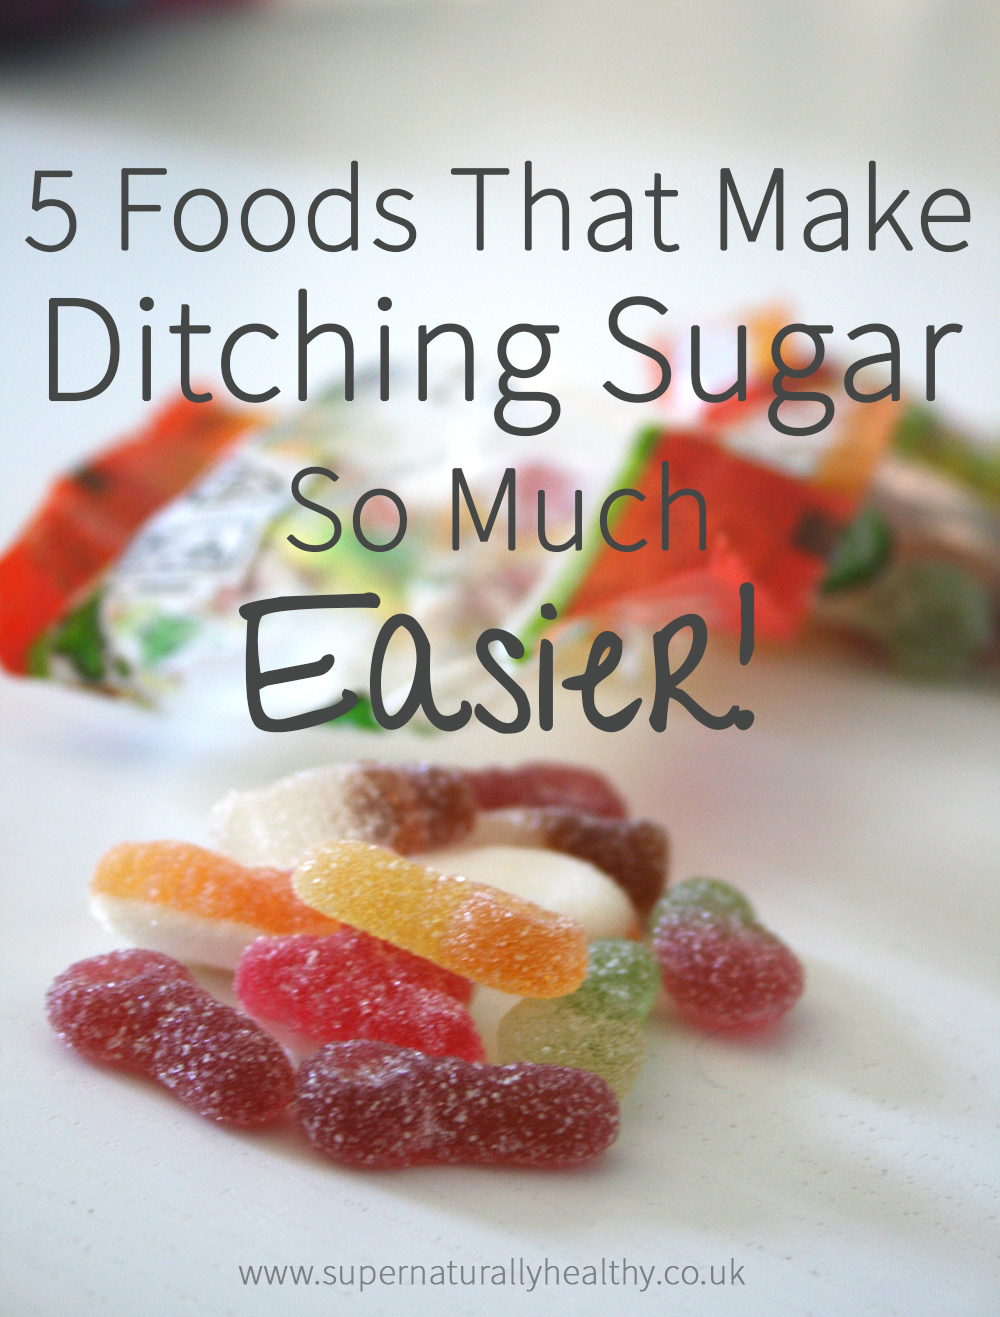 5-Foods-that-Make-Ditching-Sugar-SO-Much-Easier